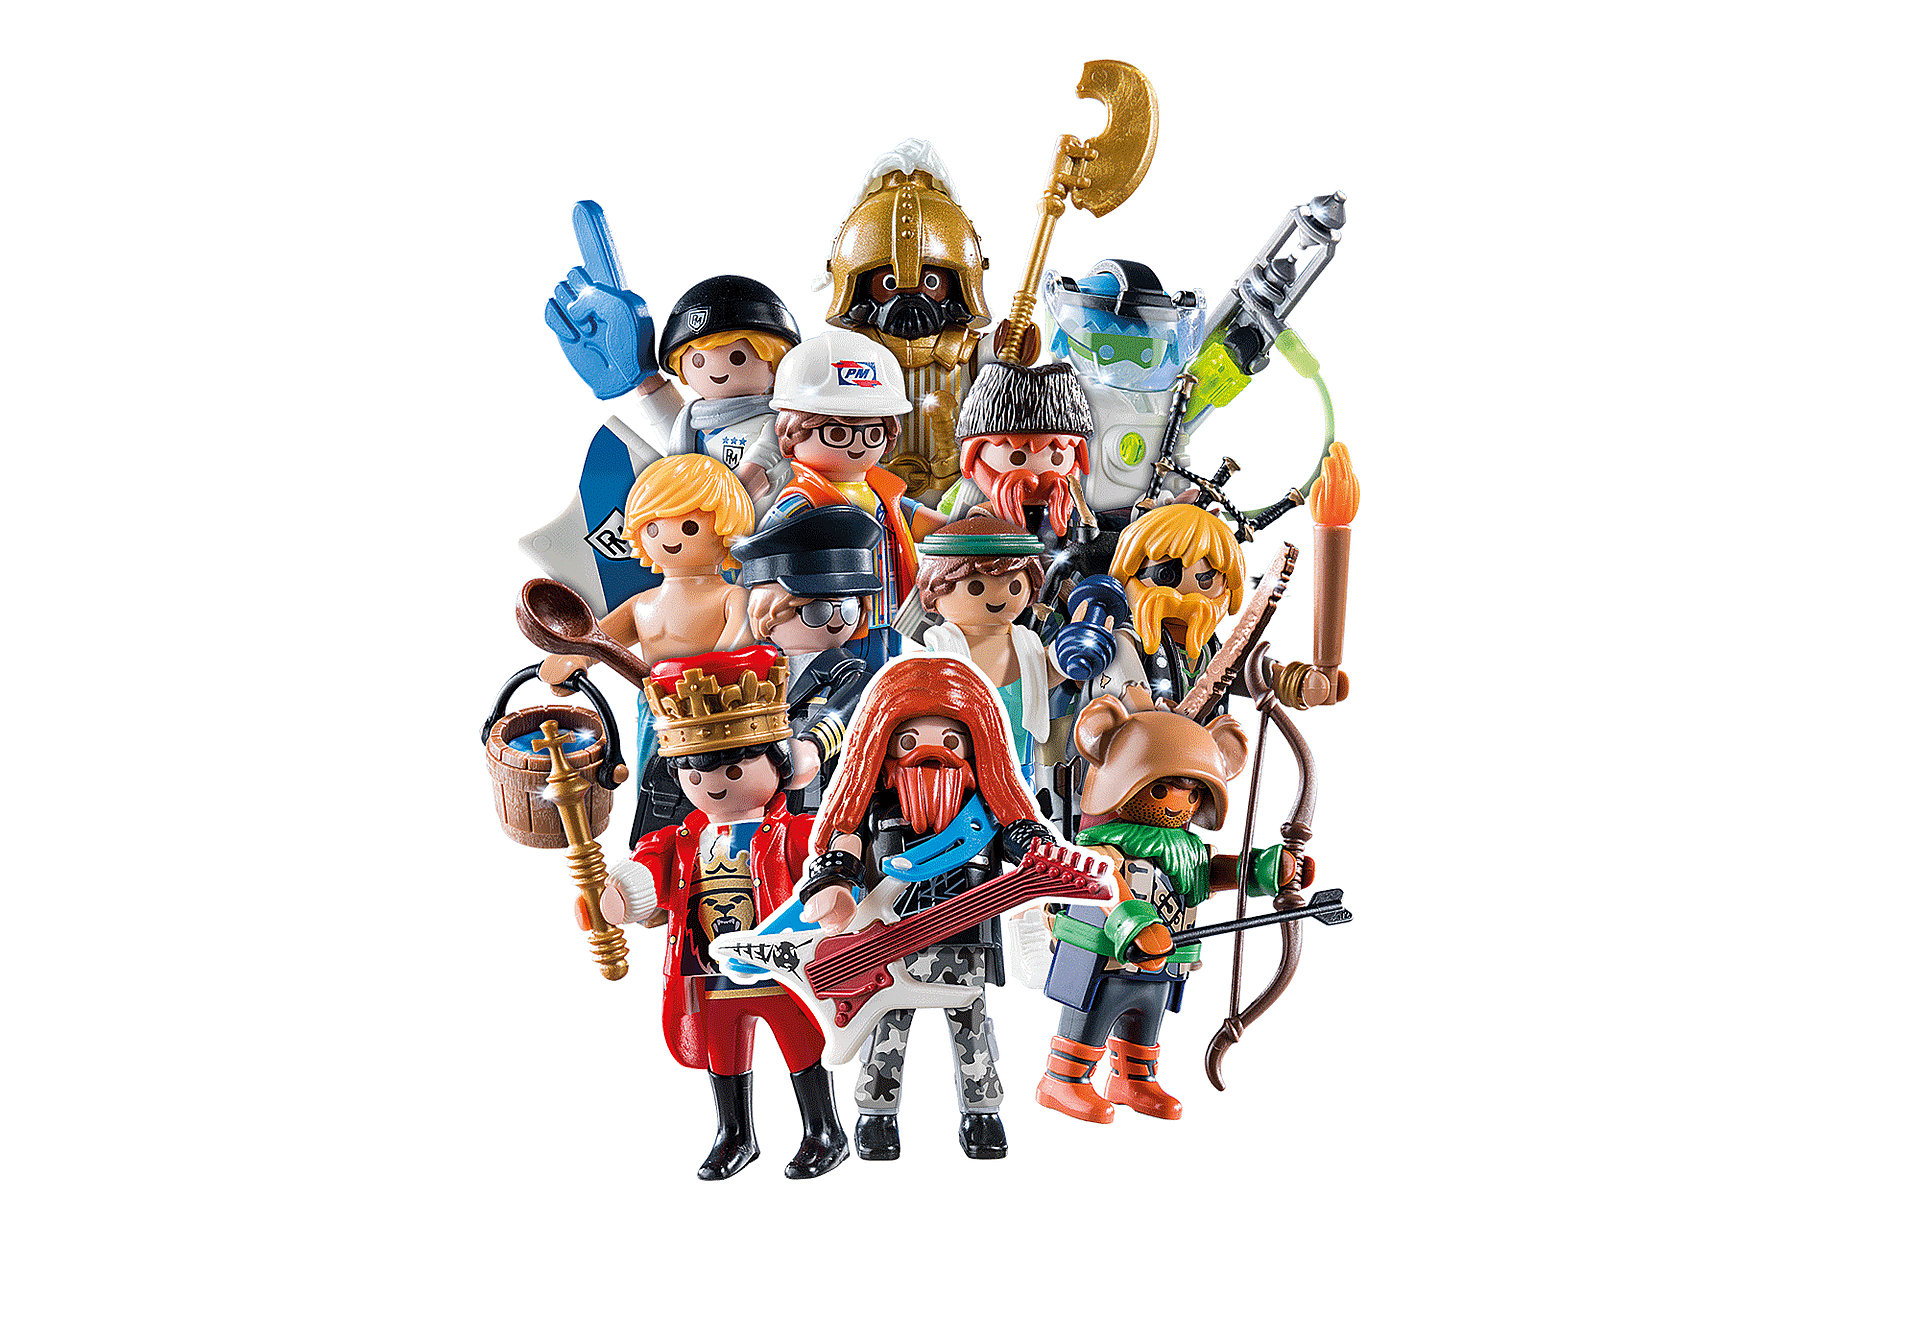 70369 PLAYMOBIL-Figures Boys (serie 18) zoom image1